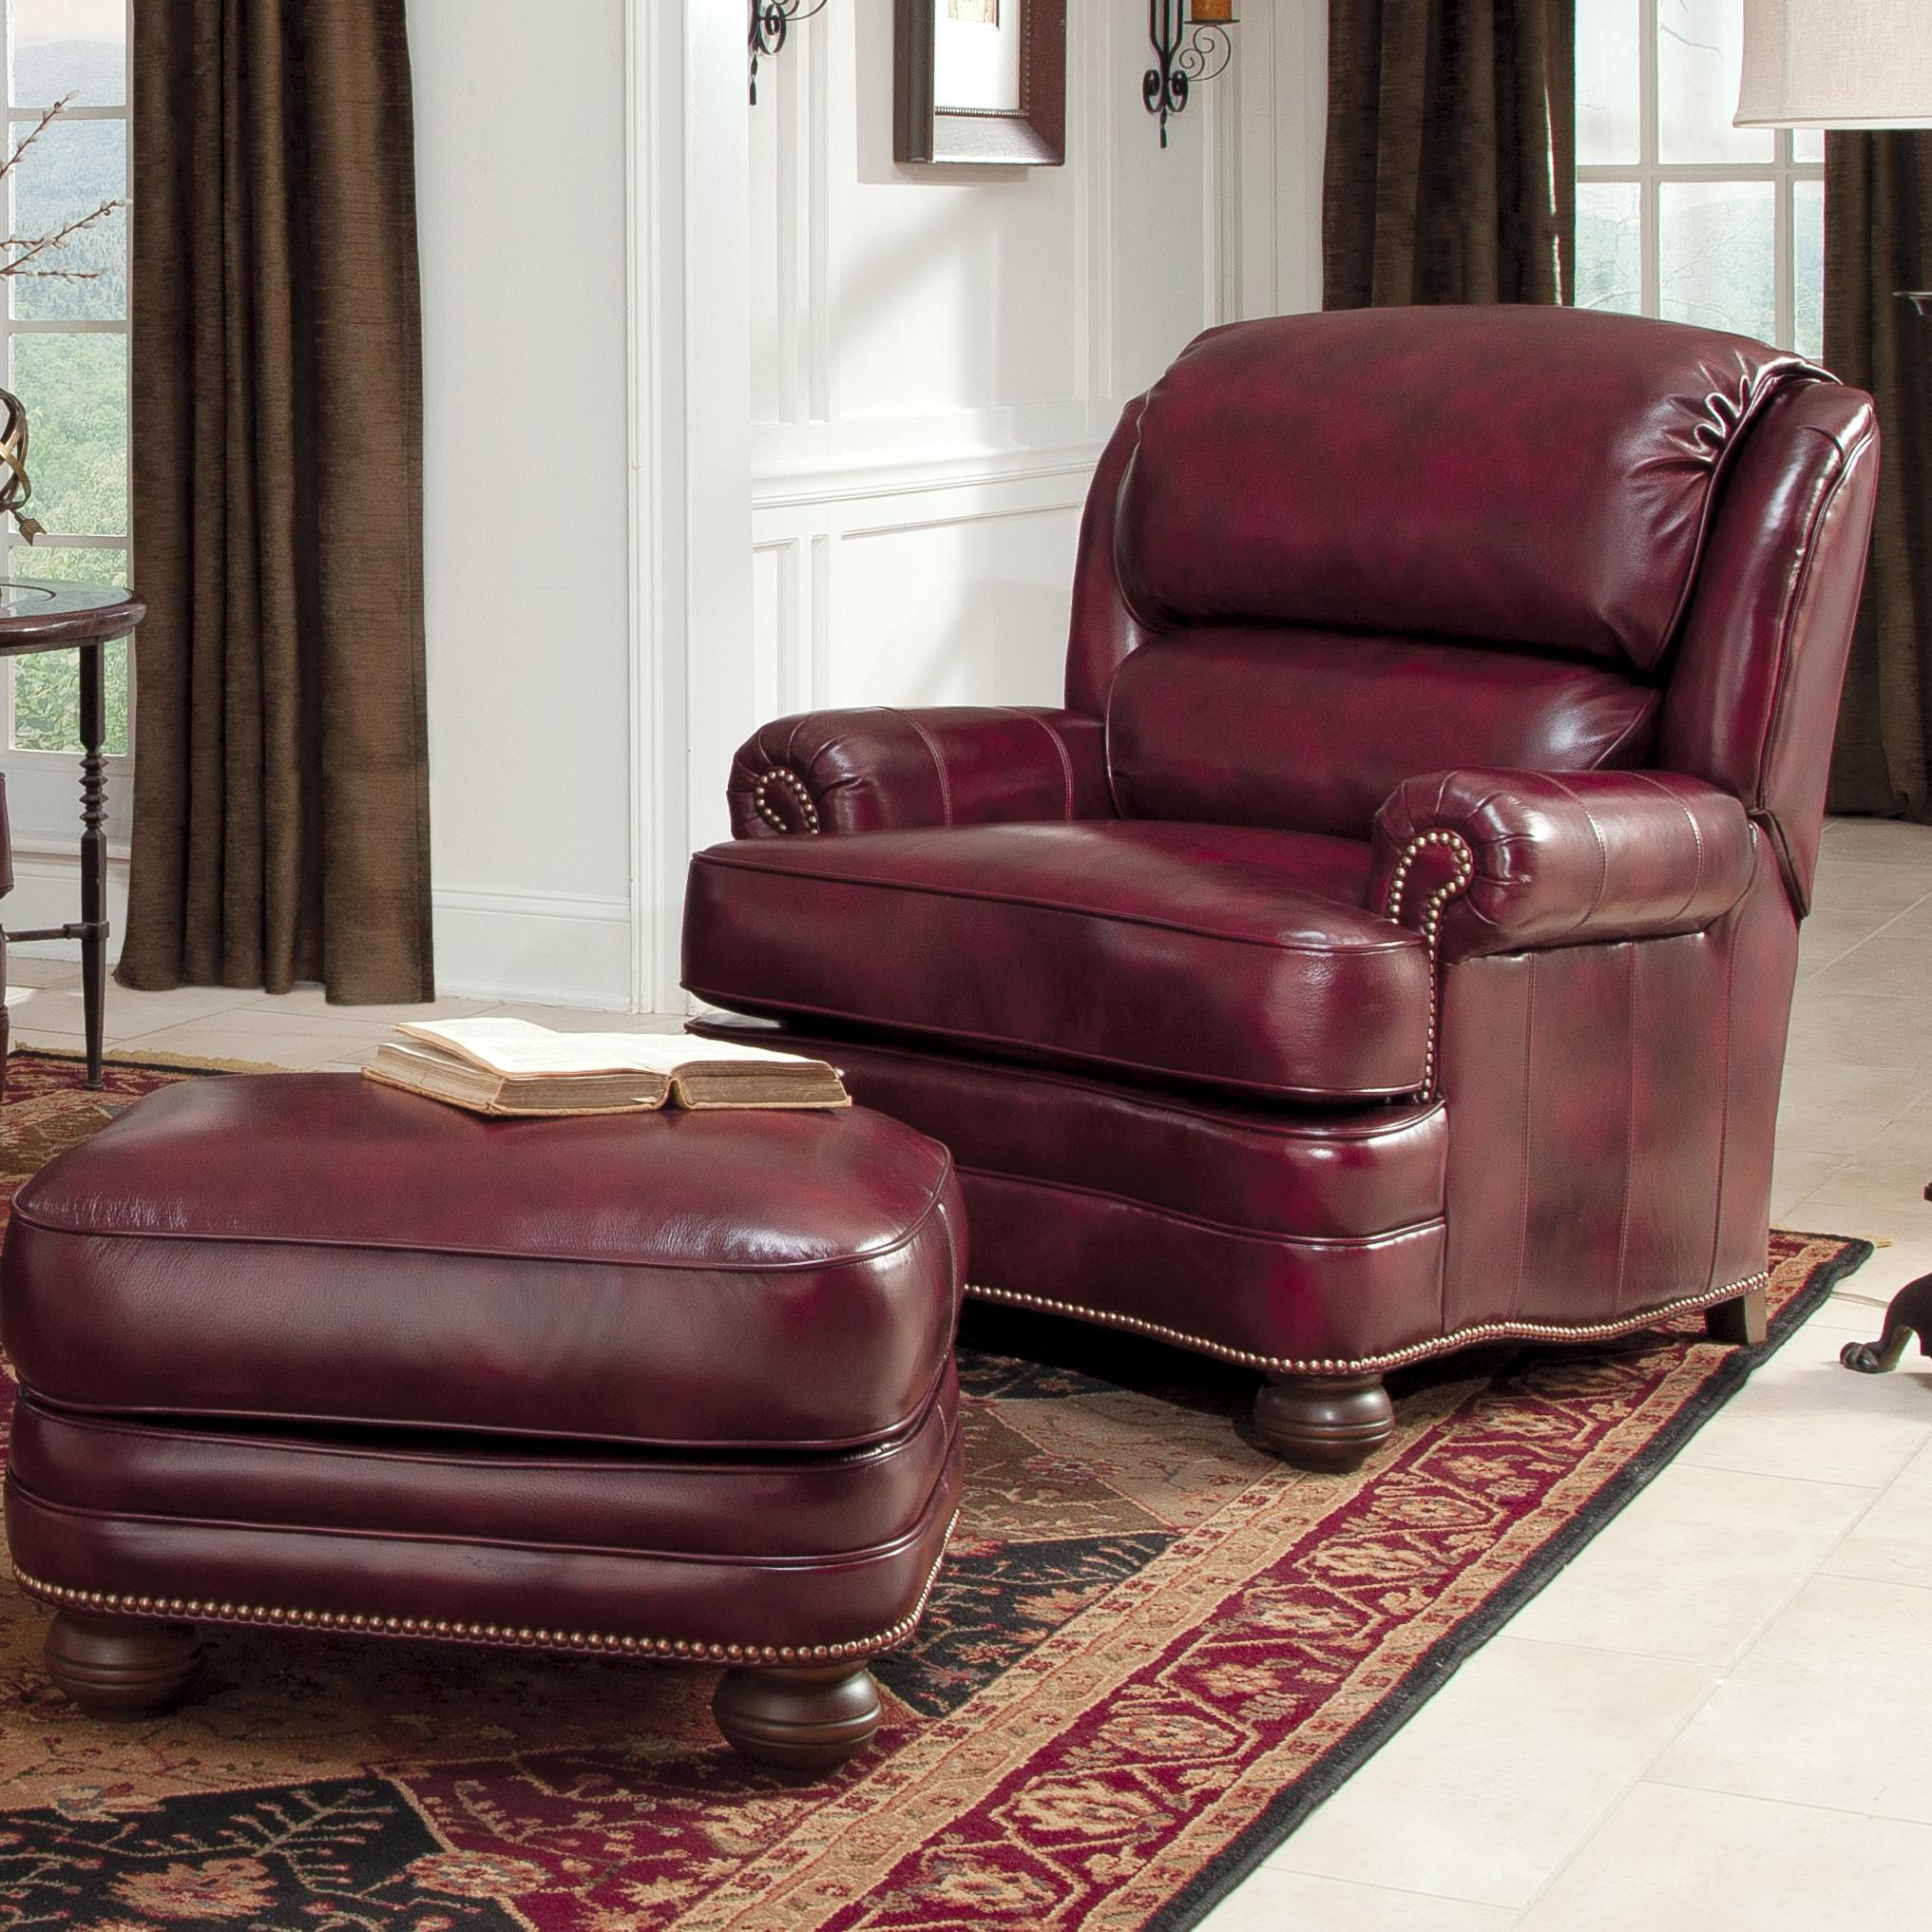 Leather Upholstered Chair And Ottoman By Smith Brothers